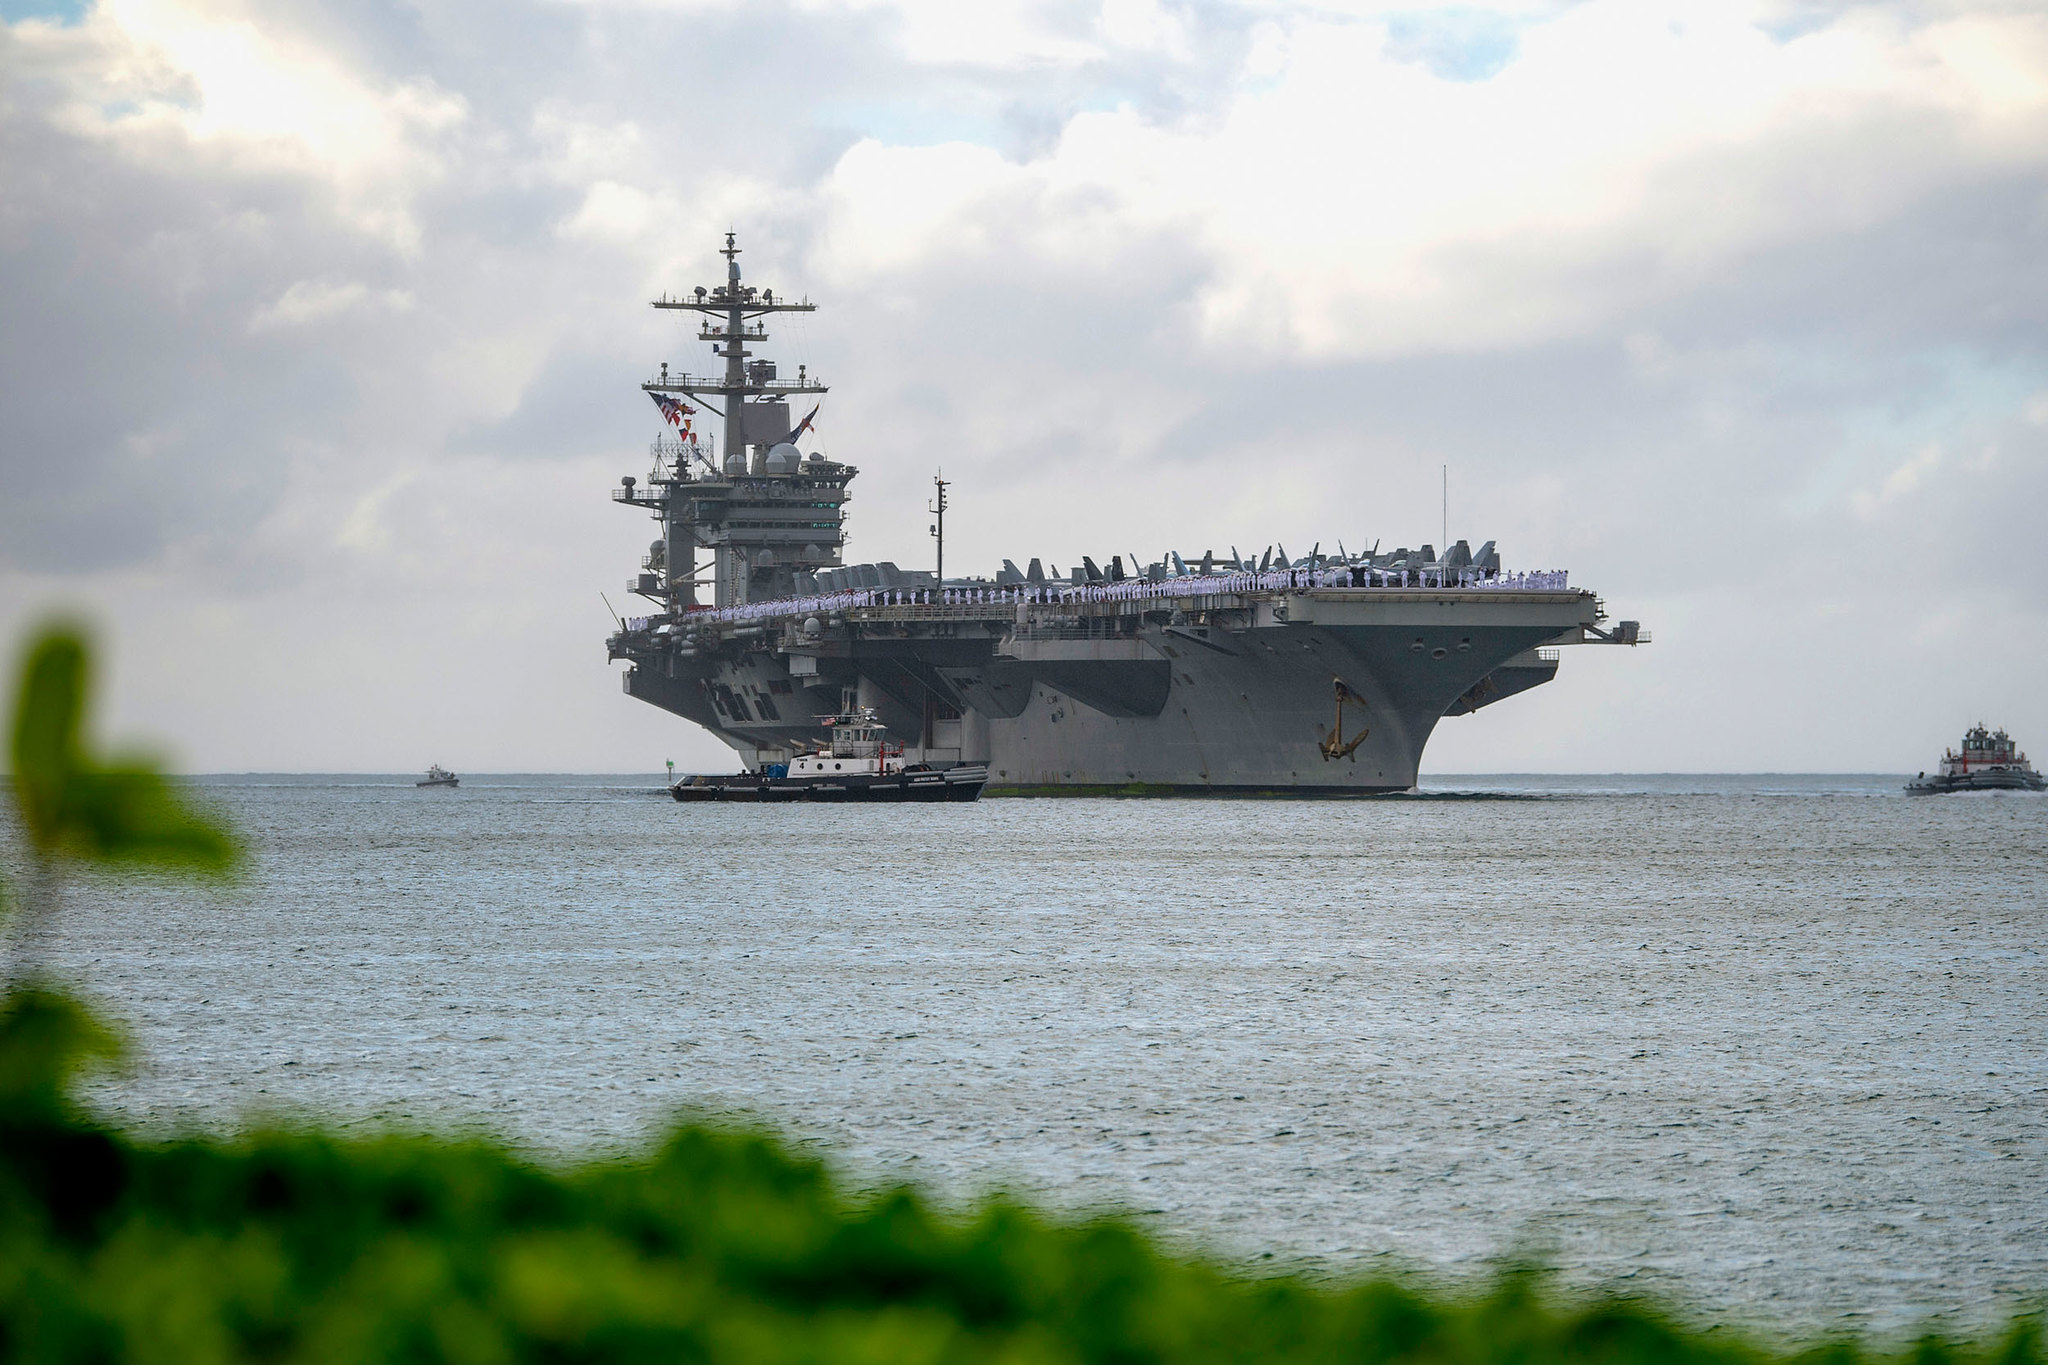 The aircraft carrier USS Abraham Lincoln (CVN 72) arrives at Joint Base Pearl Harbor-Hickam on Jan. 8, 2020, as part of an around-the-world deployment that includes a homeport shift to San Diego. (Mass Communication Specialist 3rd Class Aja B. Jackson/Navy)